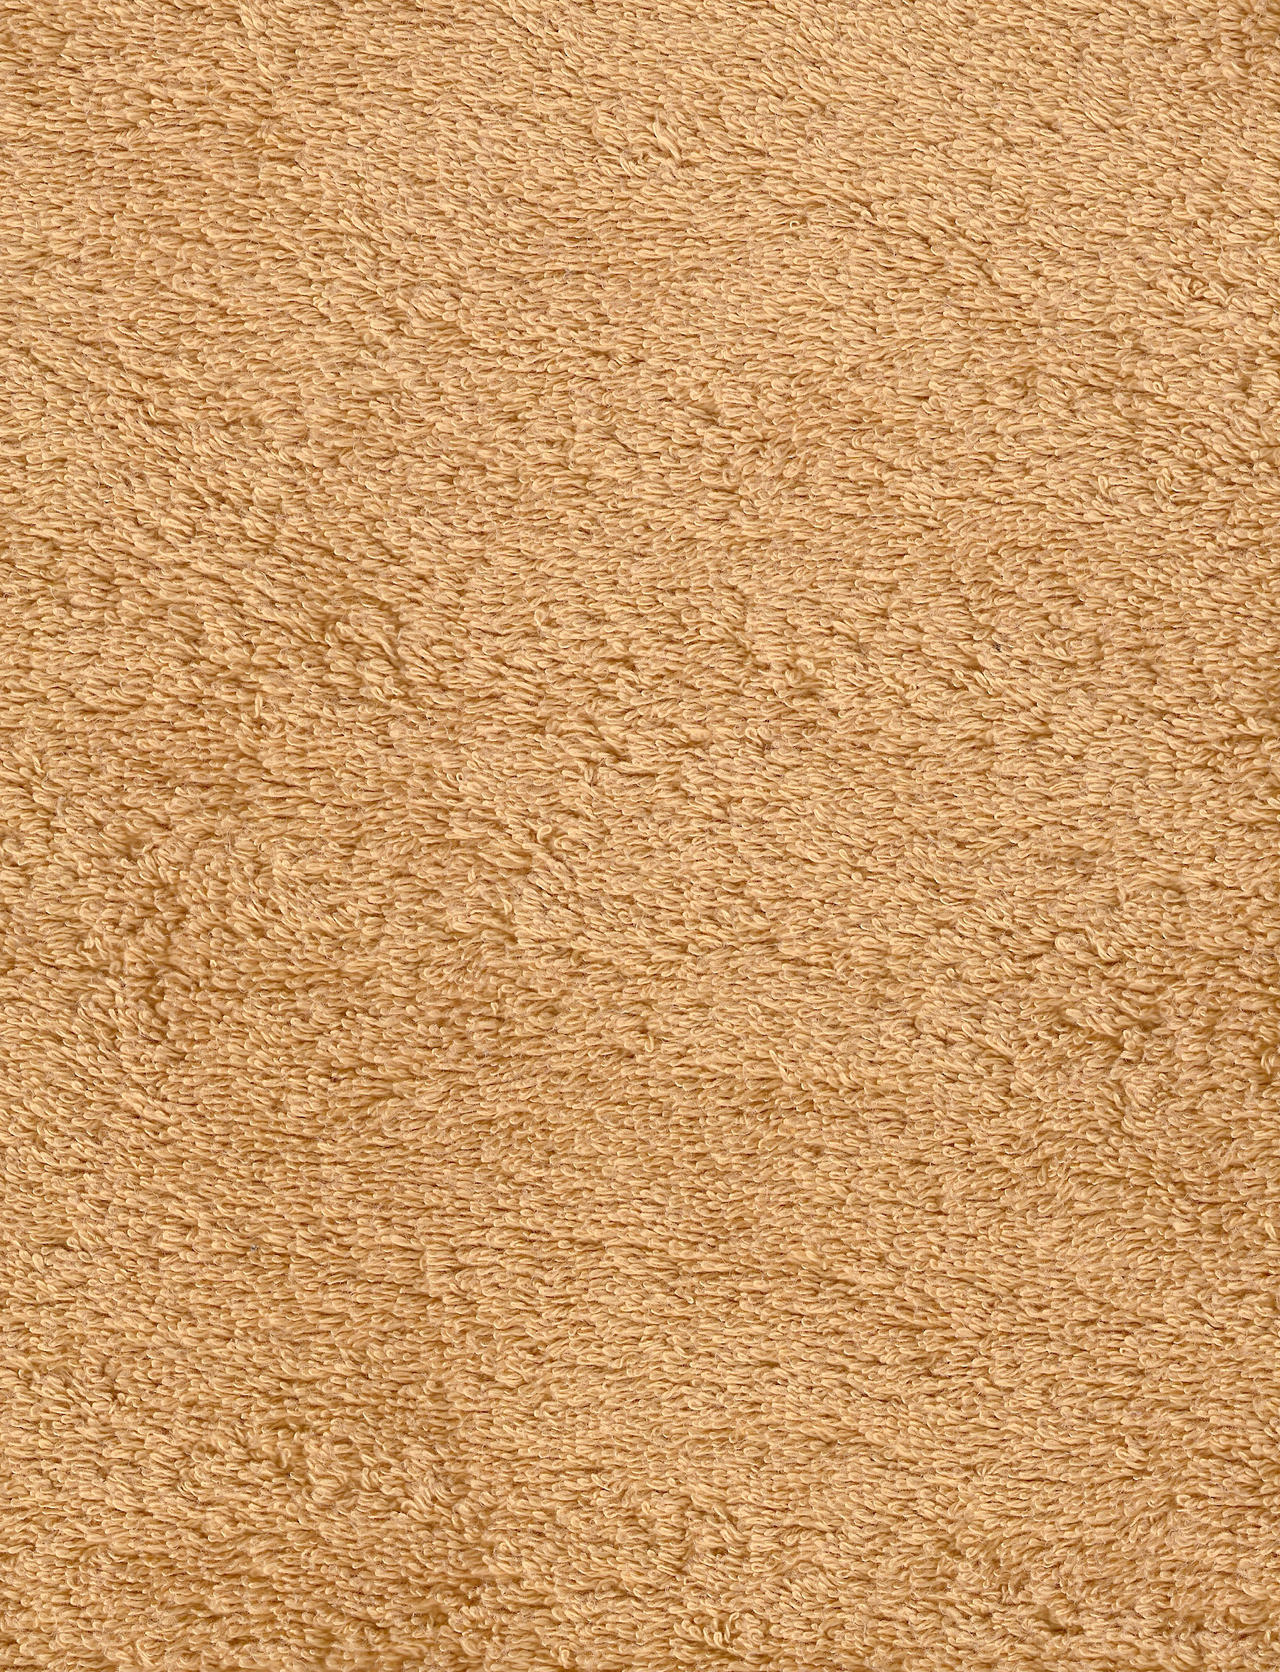 Tan Carpet Fabric Texture by Enchantedgal-Stock